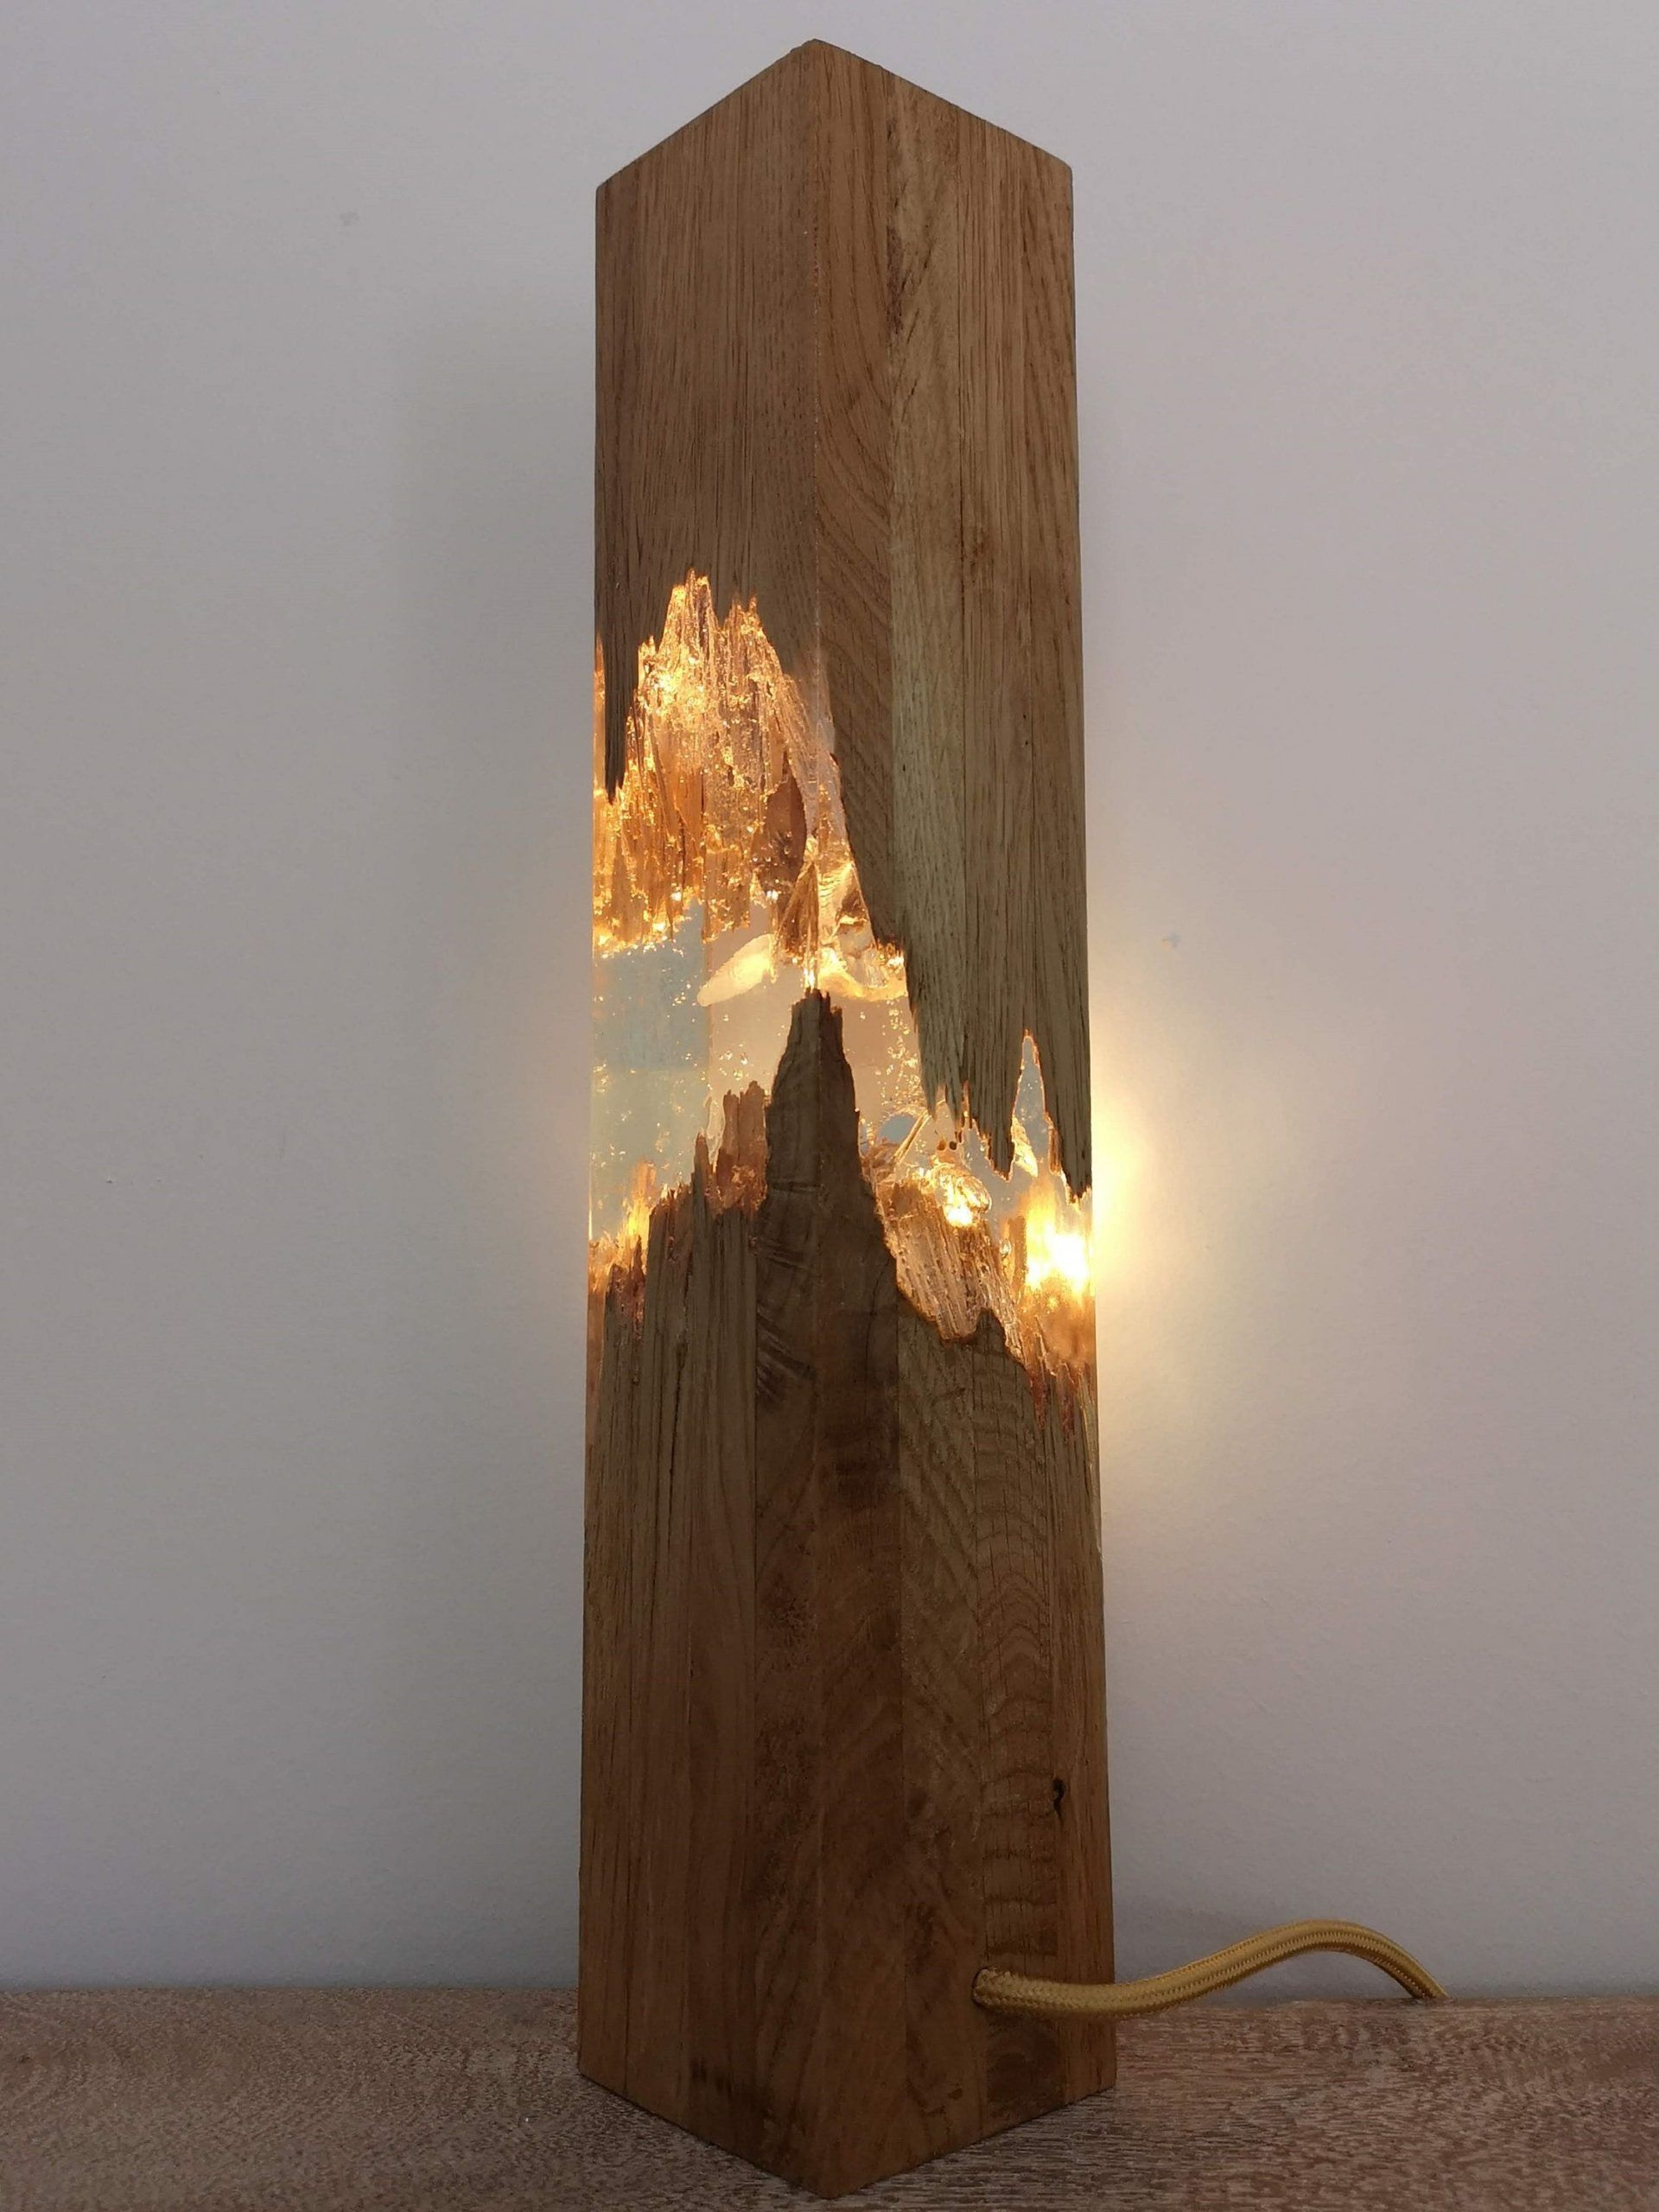 Epoxy Wood Lamp Lamp Night Lamp Resin Table Decor Light Decor